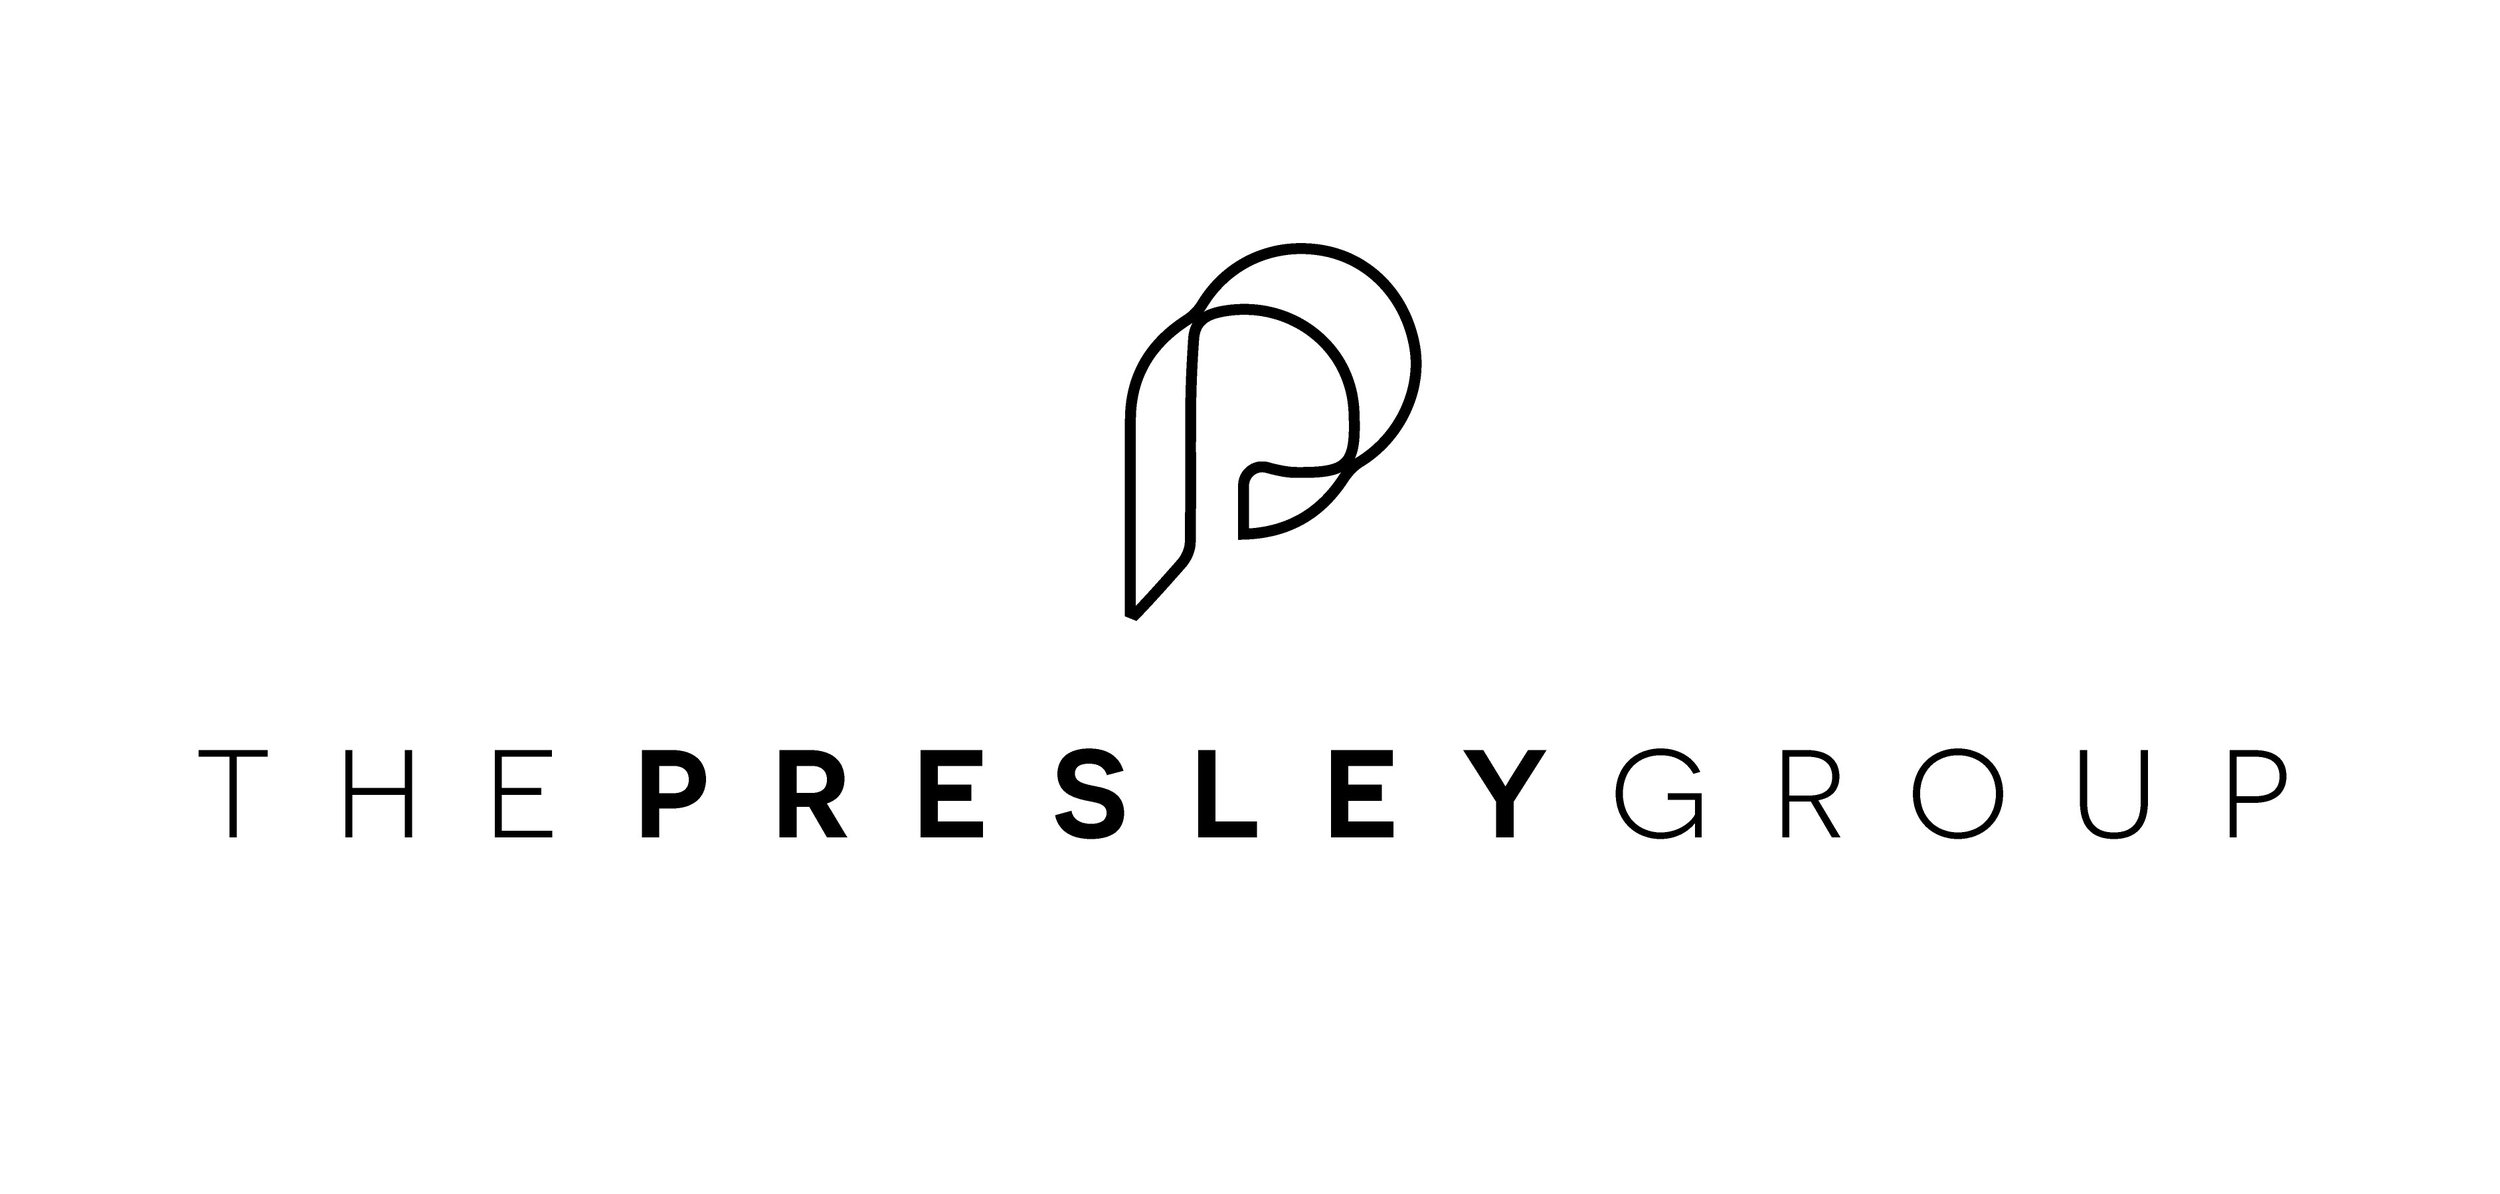 The presley group - Jaia Thomas is co-founder of The Presley Group, a management firm that represents social media influencers of color. The mission of The Presley Group is to connect companies and brands with social media influencers of color. Named in homage of the influential African-American photographer James Presley Ball, Sr., The Presley Group works to diversify the complexion of social media advertising by tapping into the long reach of black and brown influencers. Click here for more information.